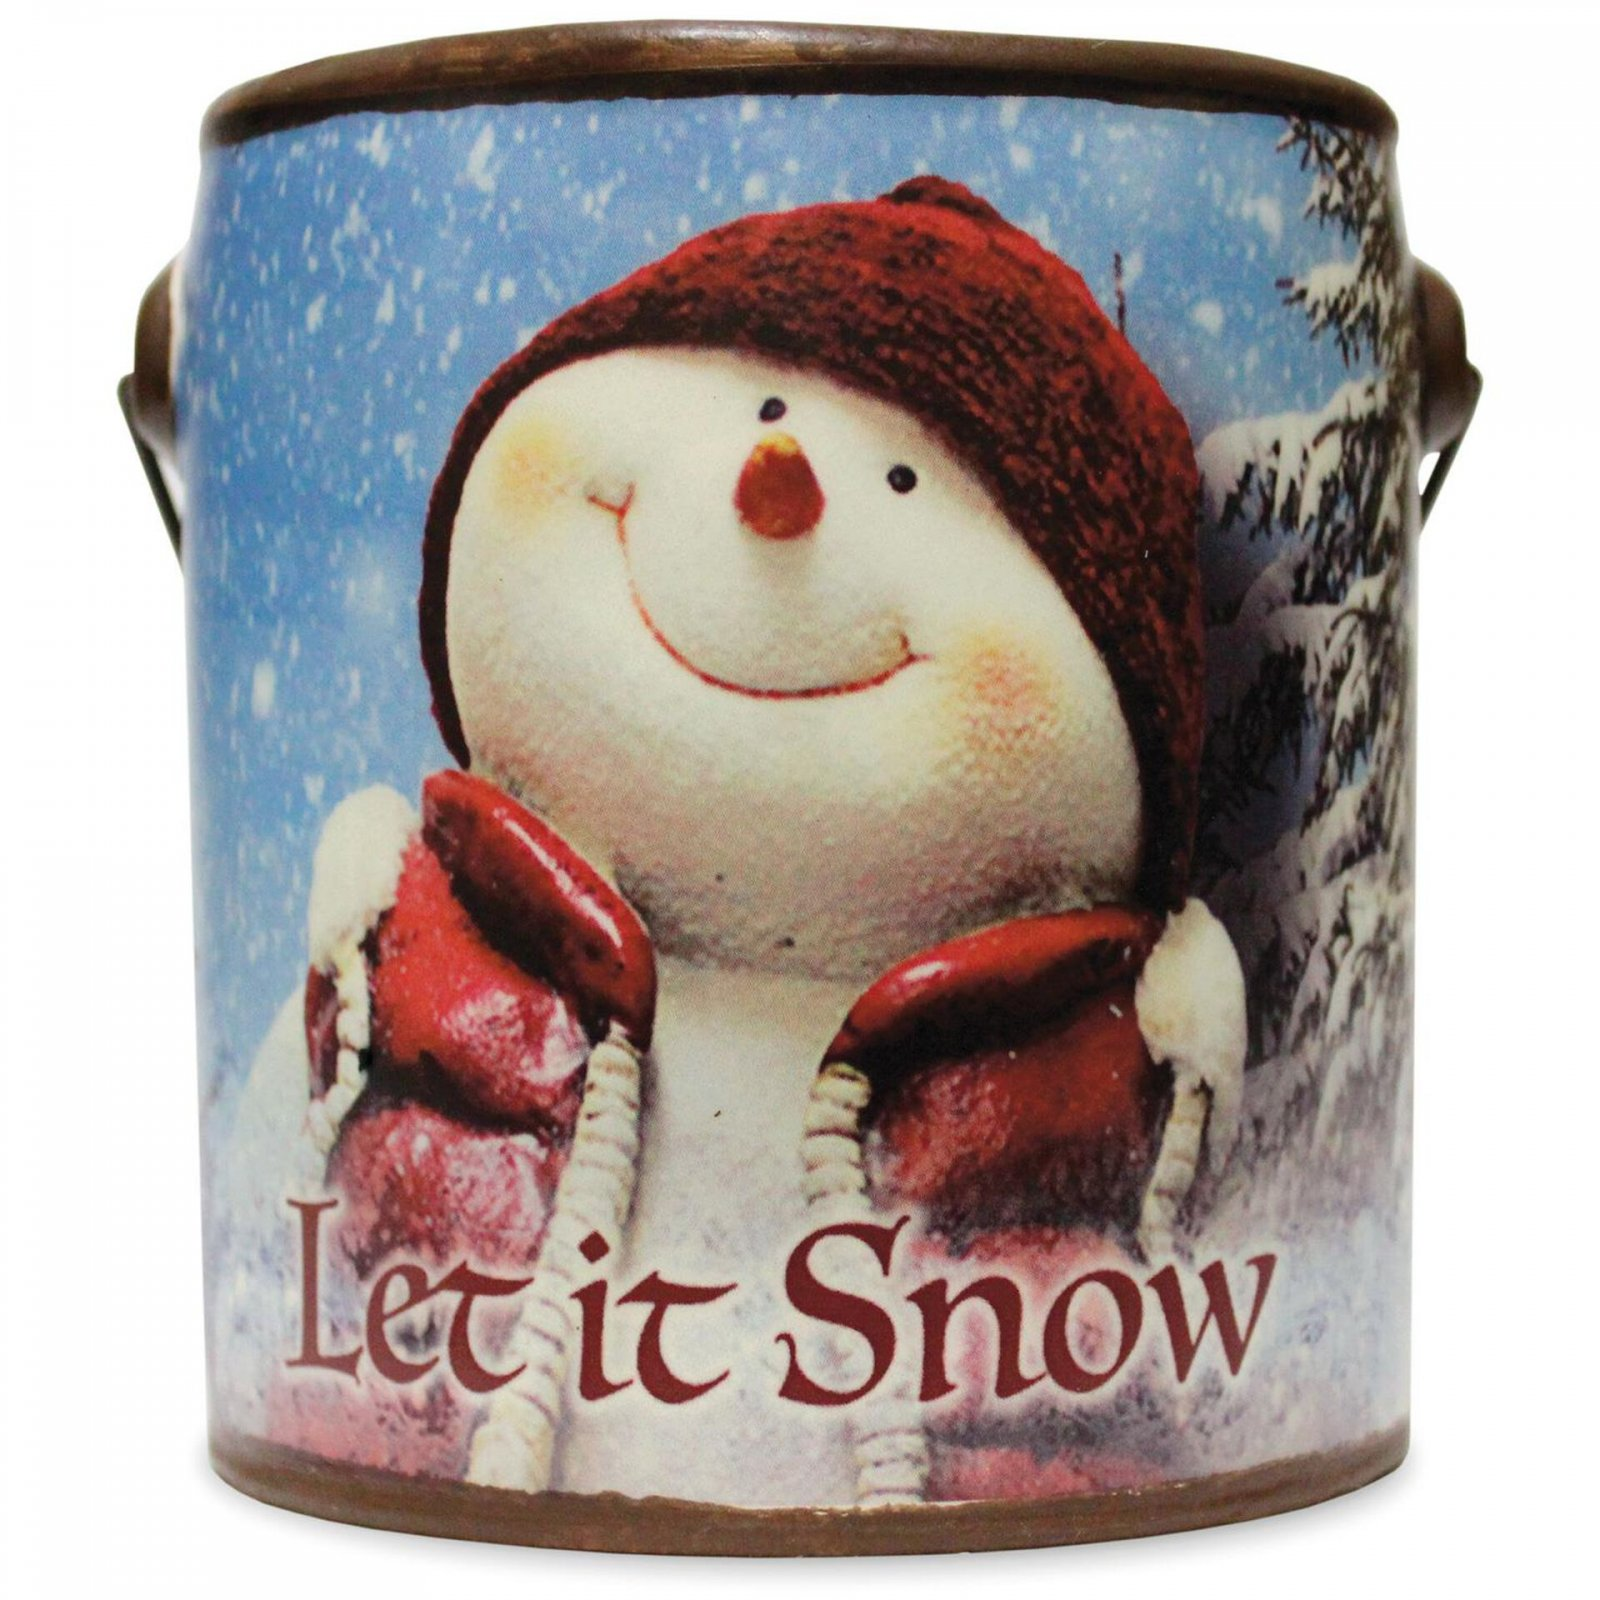 Let it Snow Farm Fresh Candle 20oz - Juicy Apple - By A Cheerful Giver